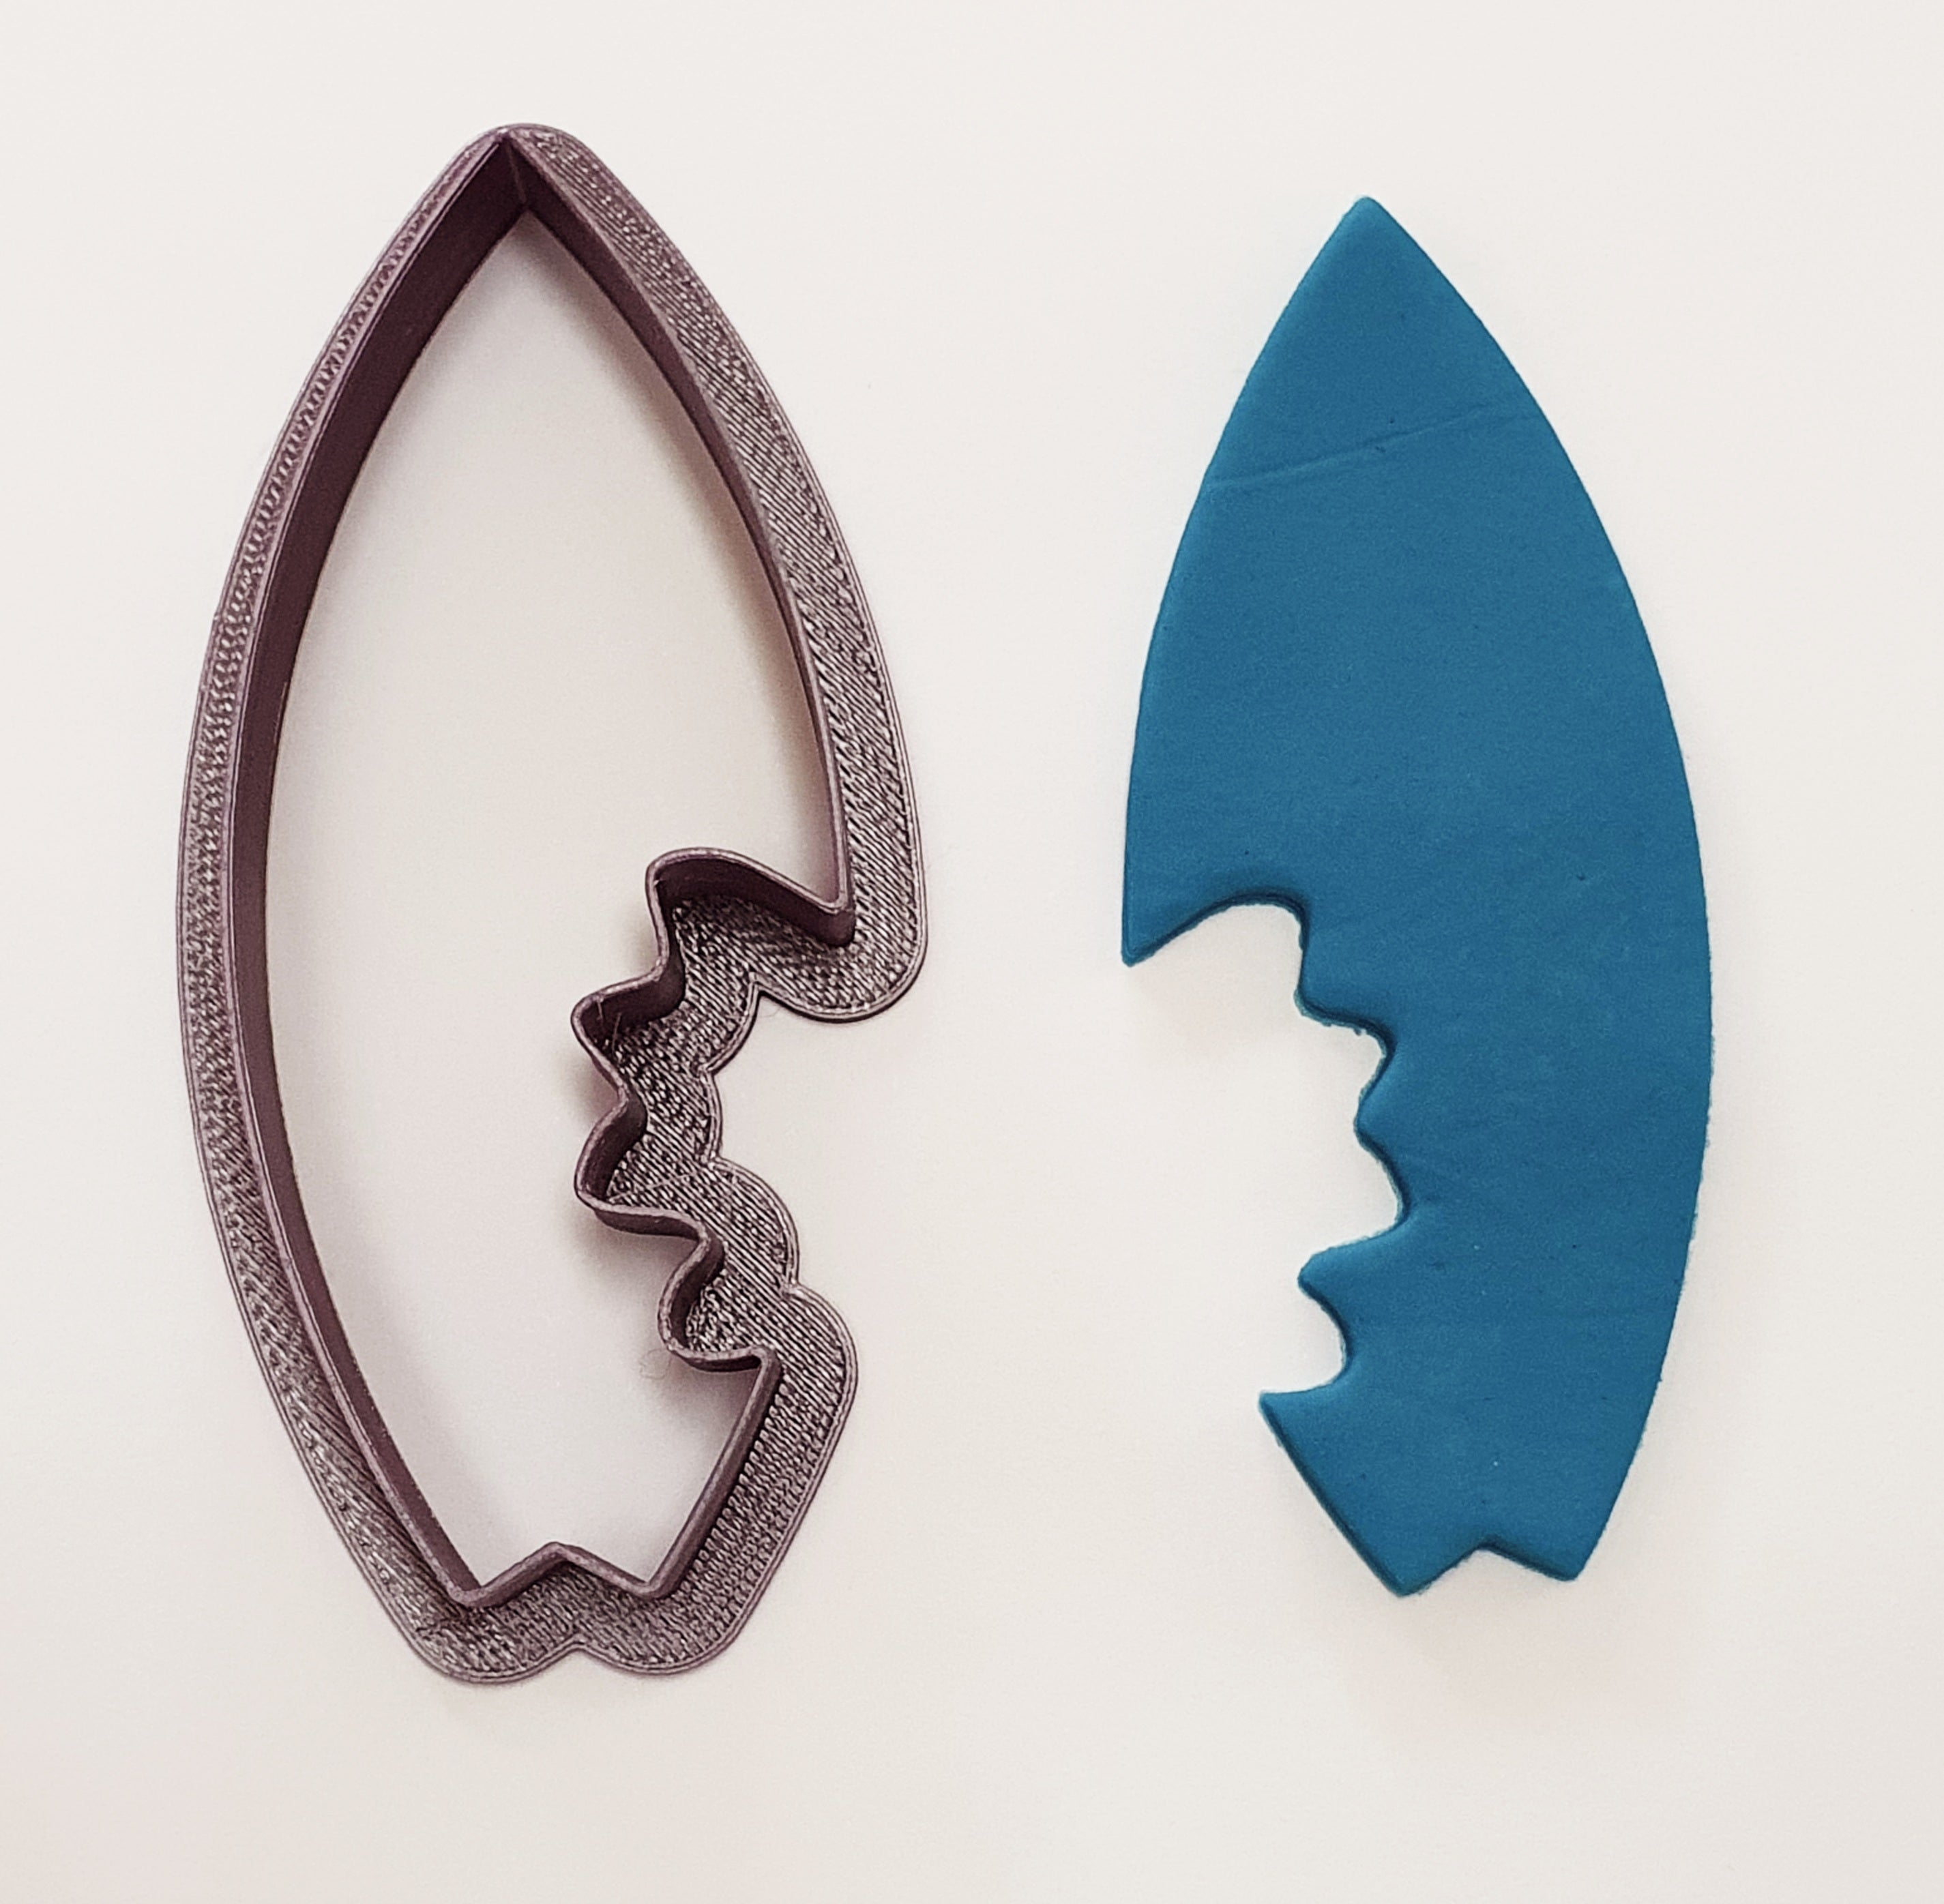 Surfboard Cookie Cutter with Bite 10cm